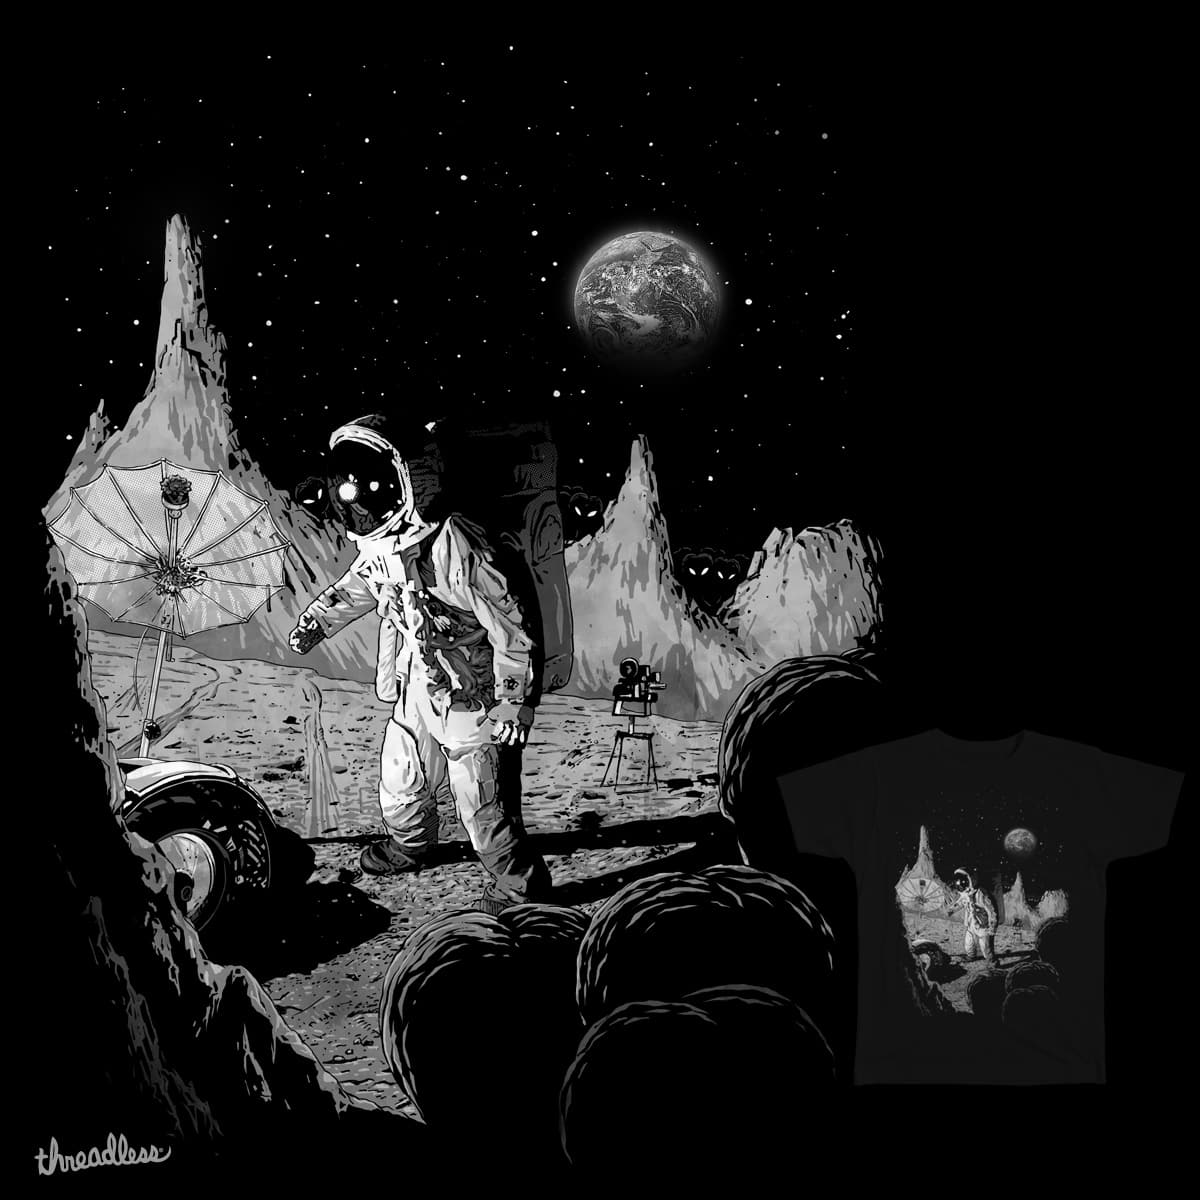 alien from earth by ronin84 and sendisign on Threadless